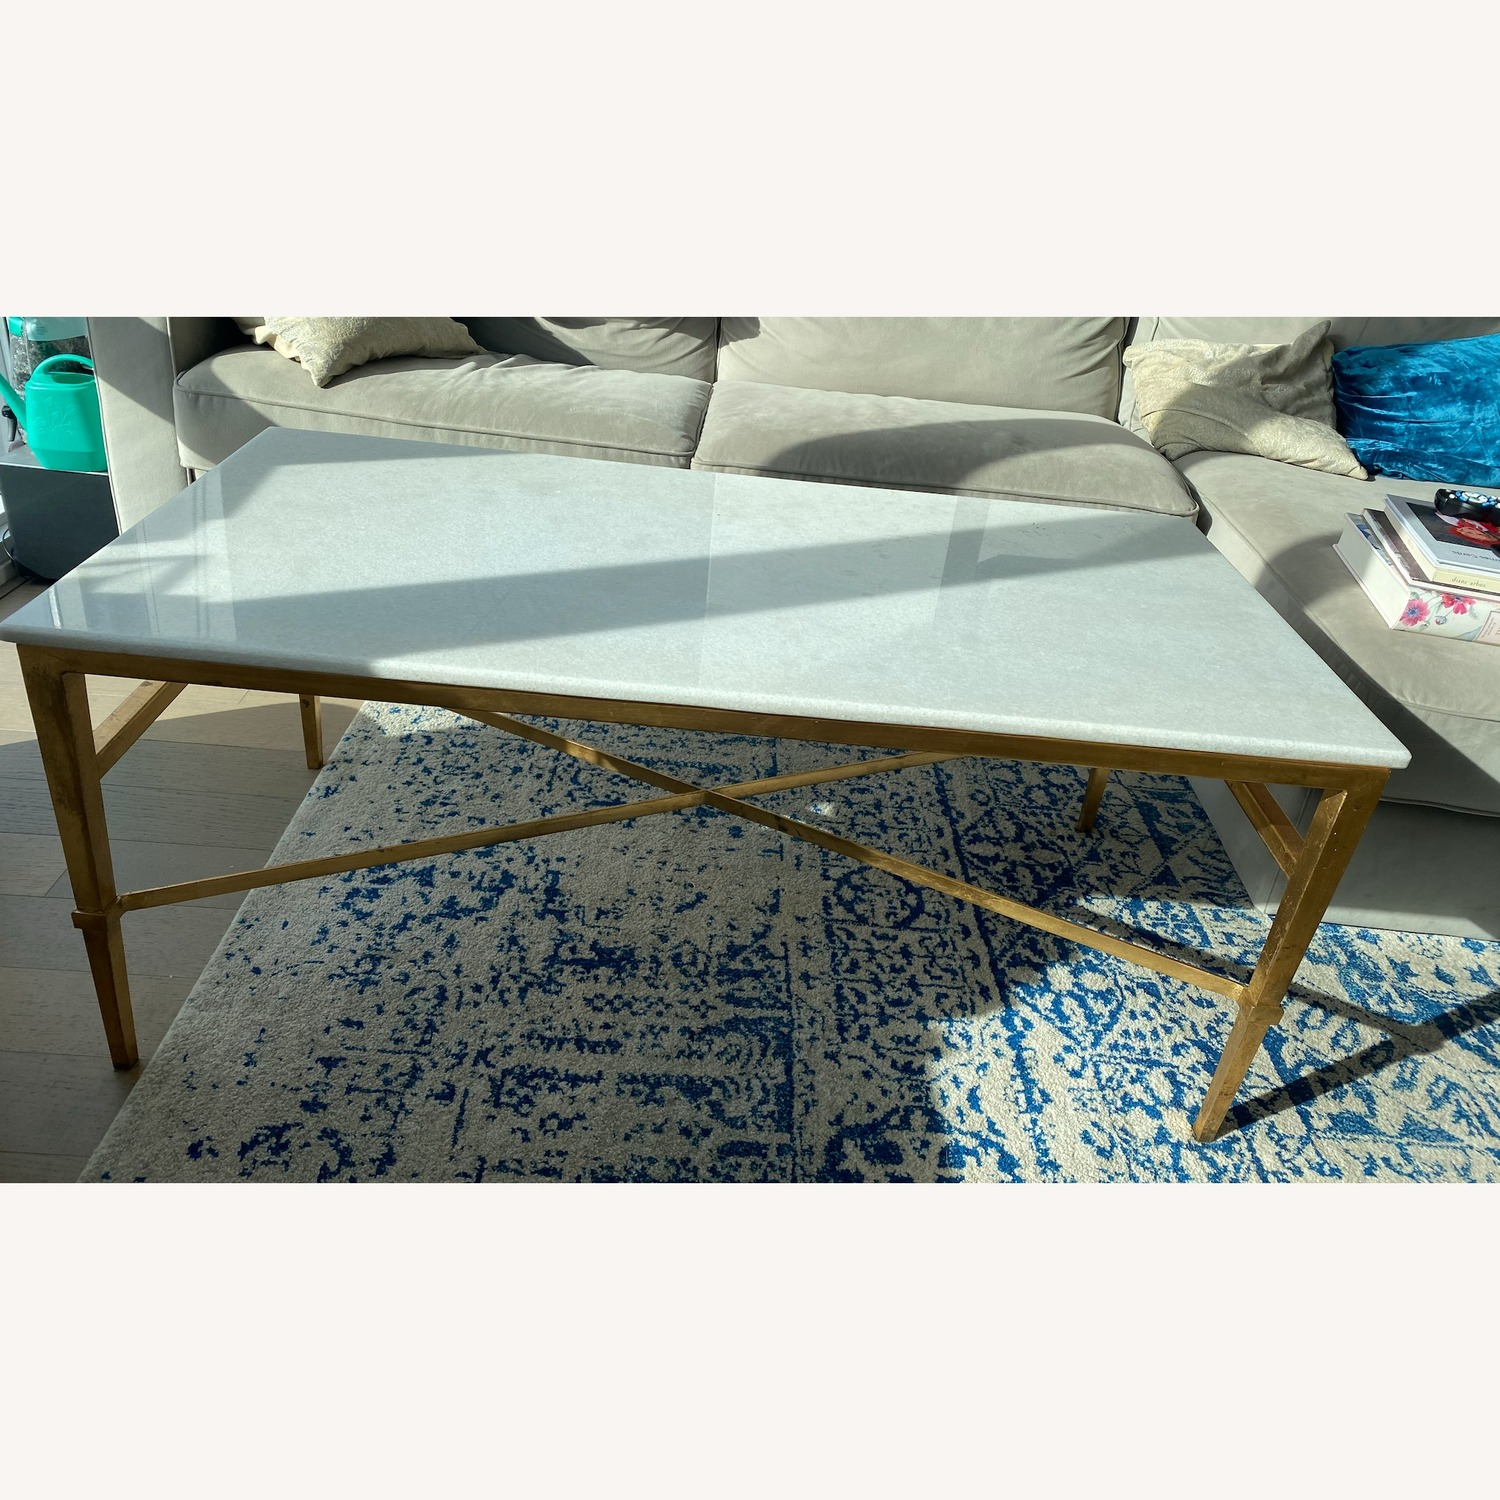 Safavieh Couture Gold & Marble Acker Coffee Table - image-4